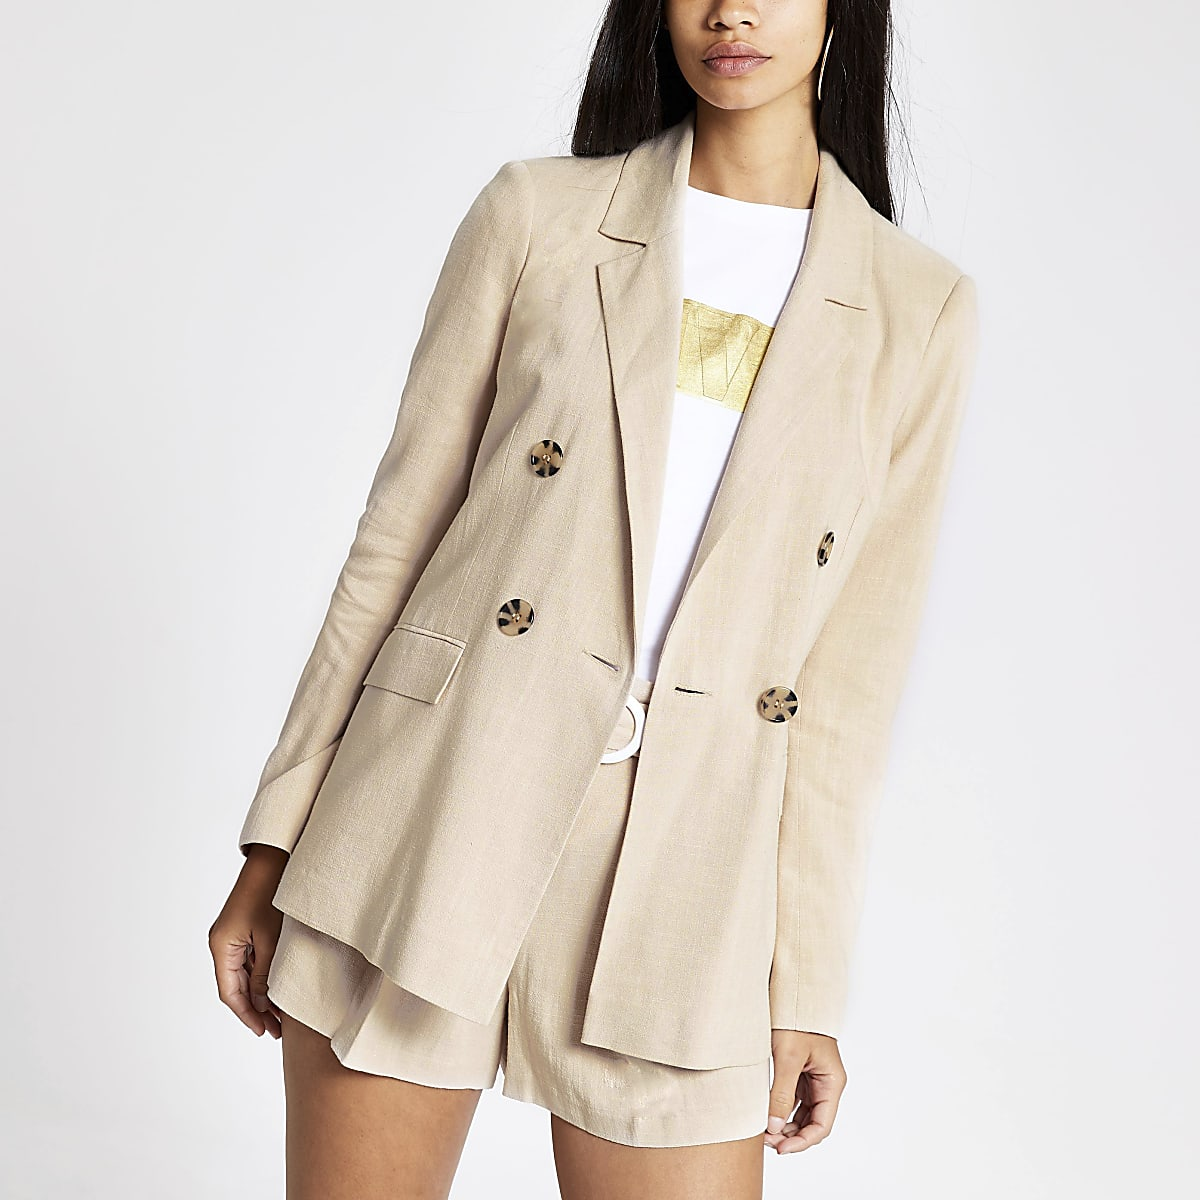 River Island Dark Cream Boyfriend Blazer